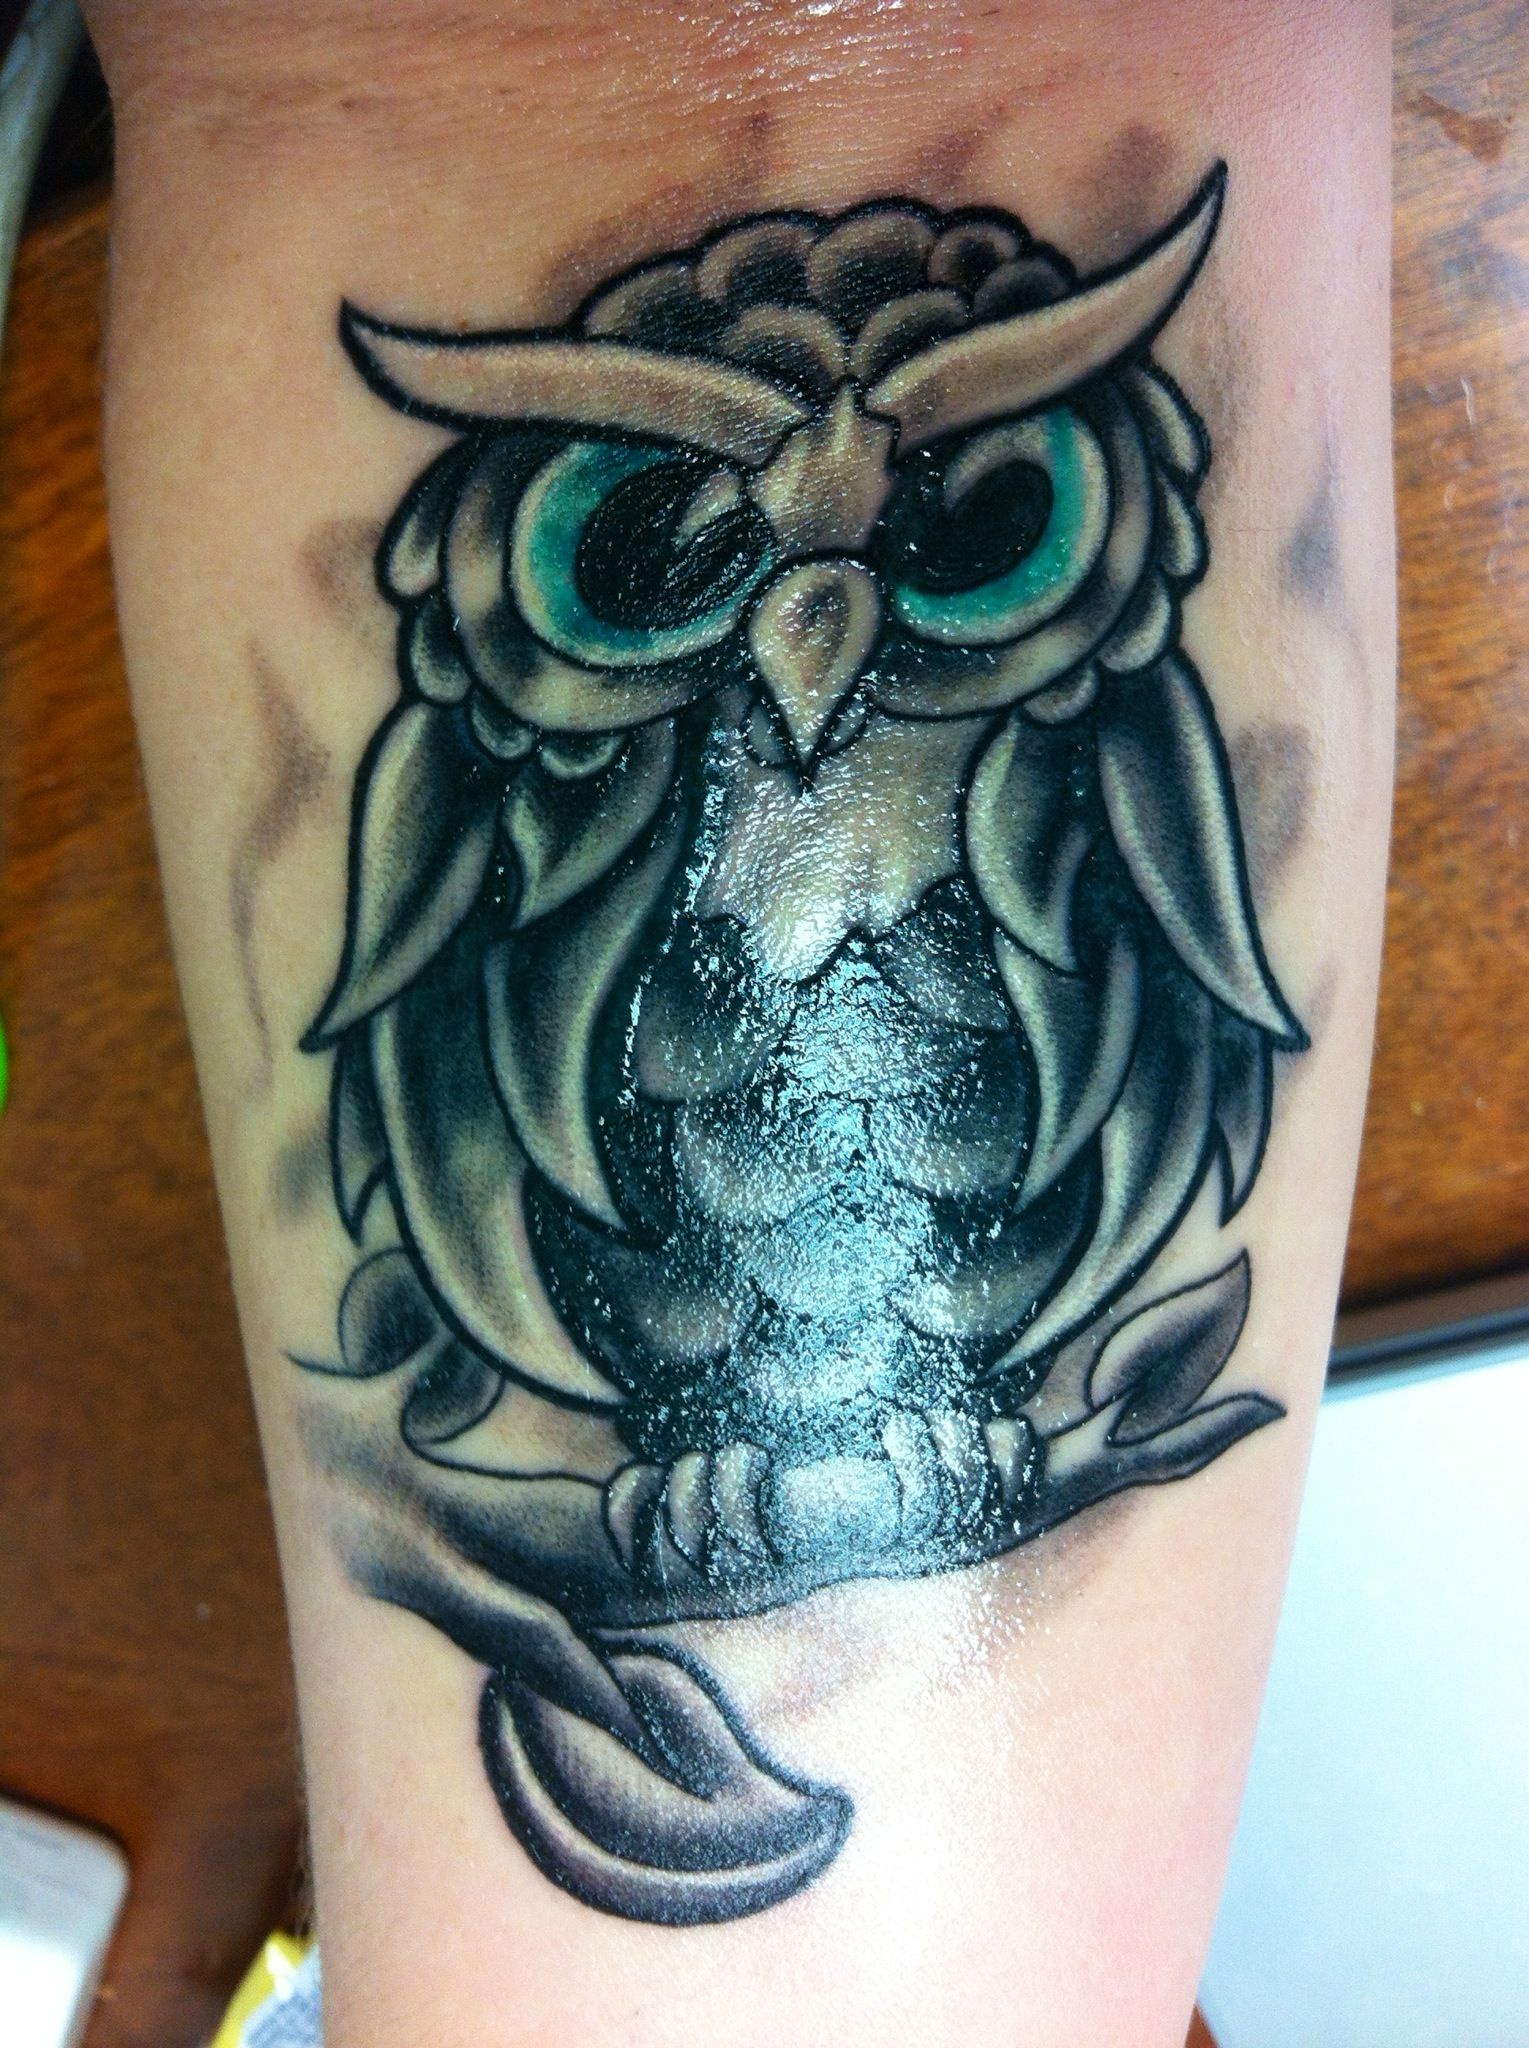 Owl tattoo. Black and Gray shades with teal eyes Tattoos